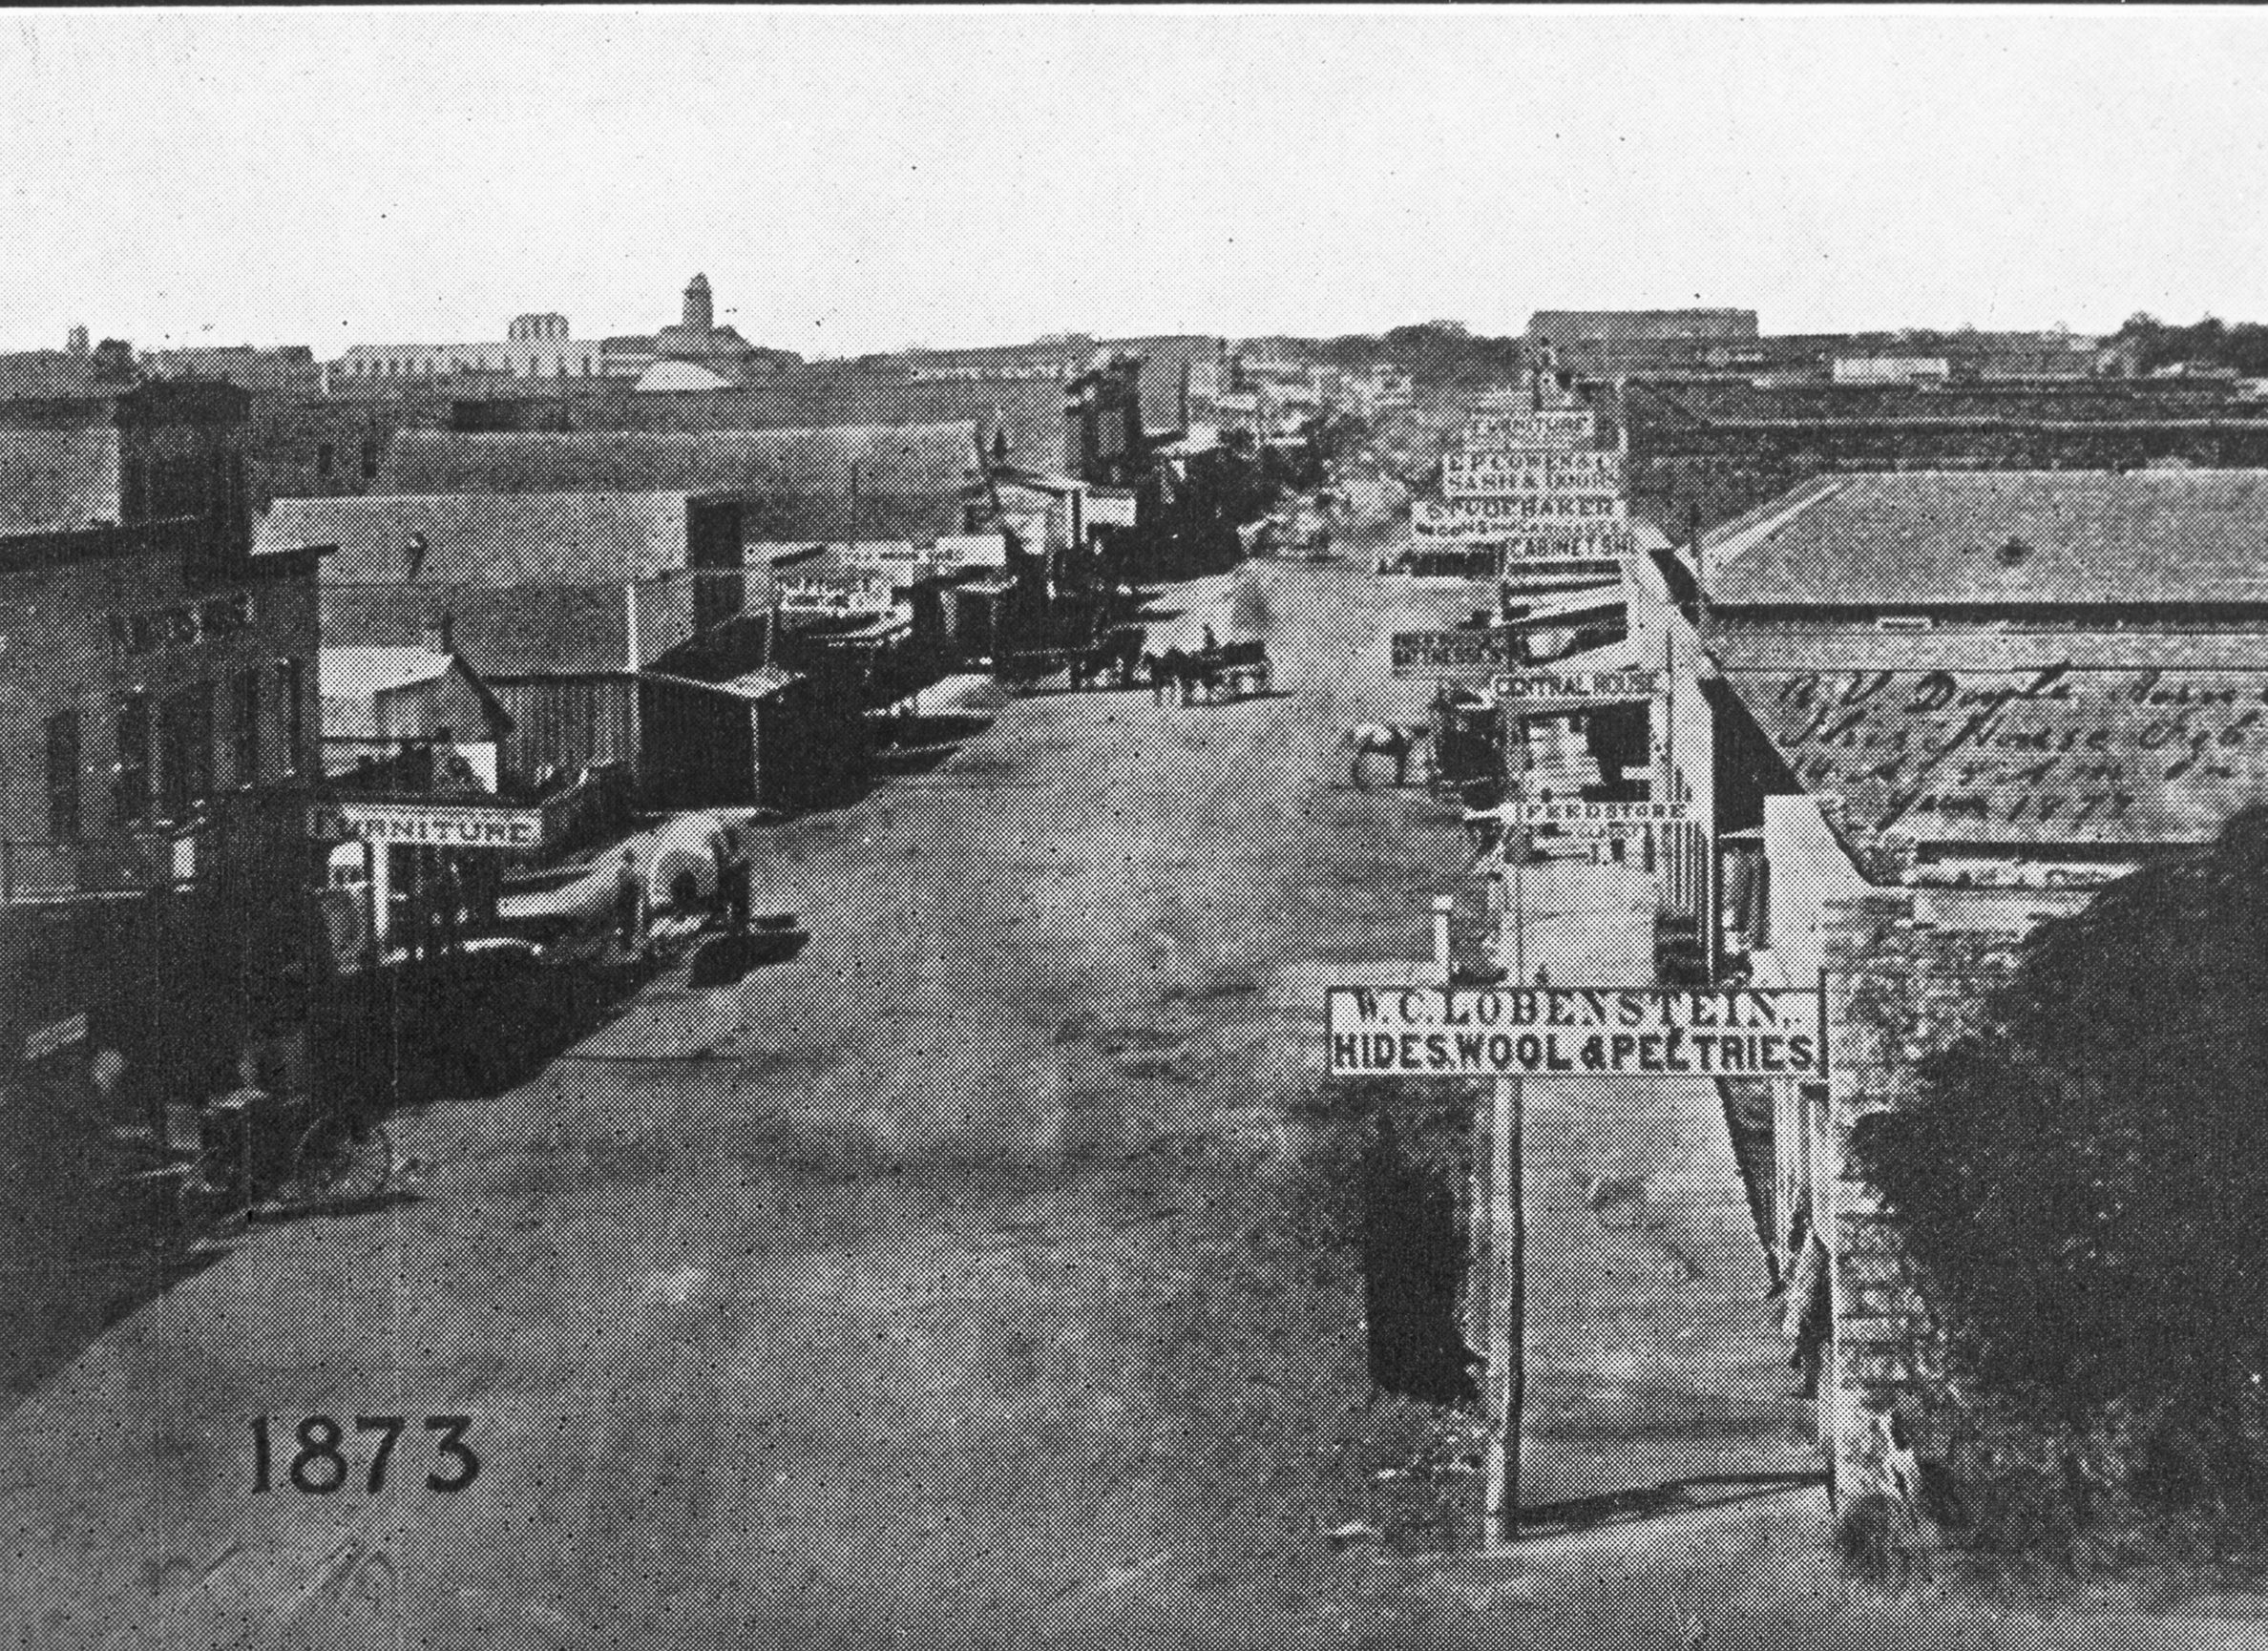 Photograph Of Dallas 1873 Squire Haskins Photography Inc Photographer Uta Libraries Digital Gallery Special Collectio Downtown Dallas Old Pictures Utas